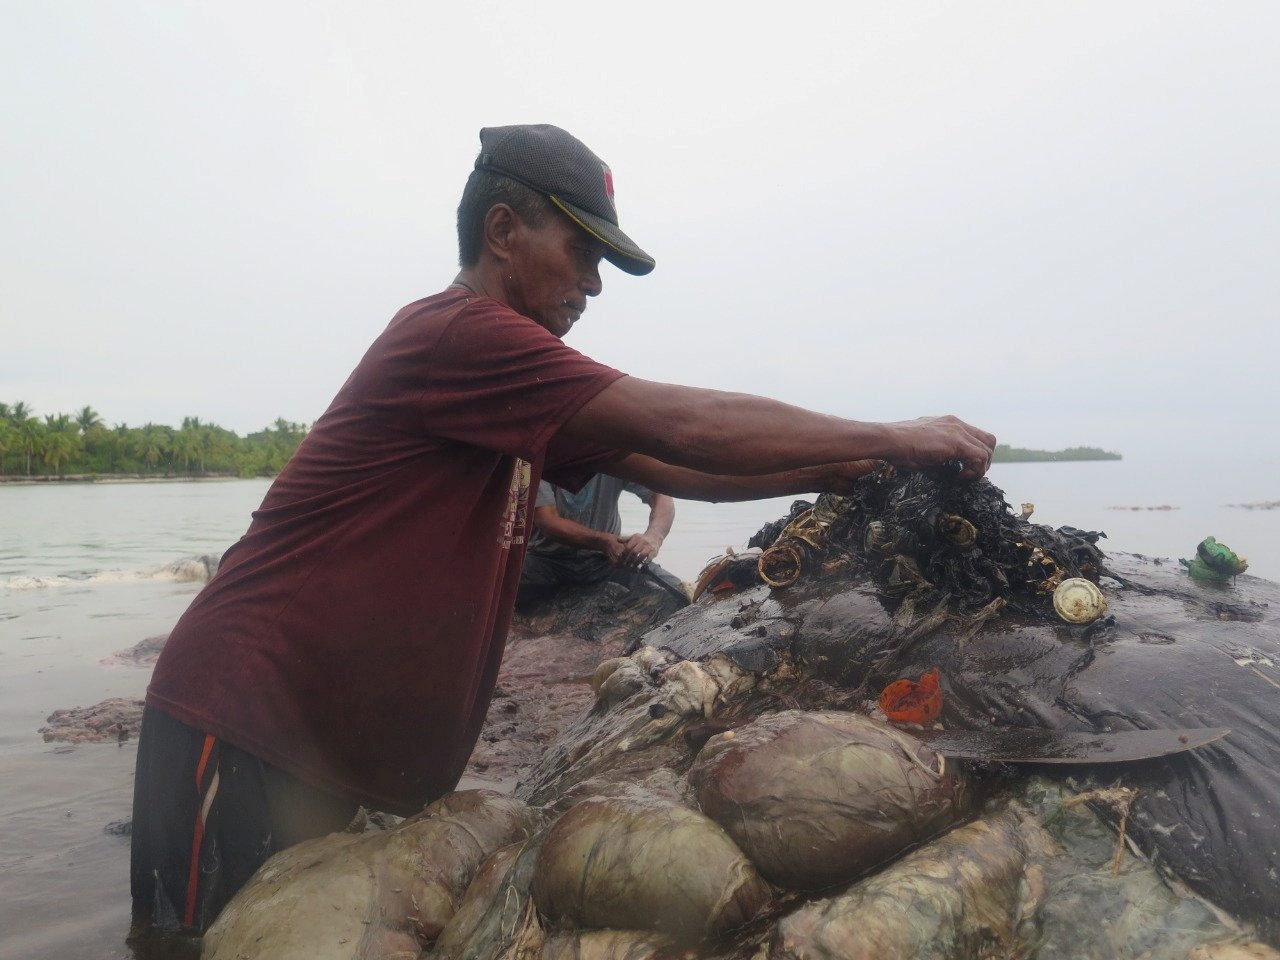 A man collects plastic items from a whale's belly, in Wakatobi, Southeast Sulawesi, Indonesia, November 19, 2018 in this picture obtained from social media. KARTIKA SUMOLANG/via REUTERS THIS IMAGE HAS BEEN SUPPLIED BY A THIRD PARTY. MANDATORY CREDIT.